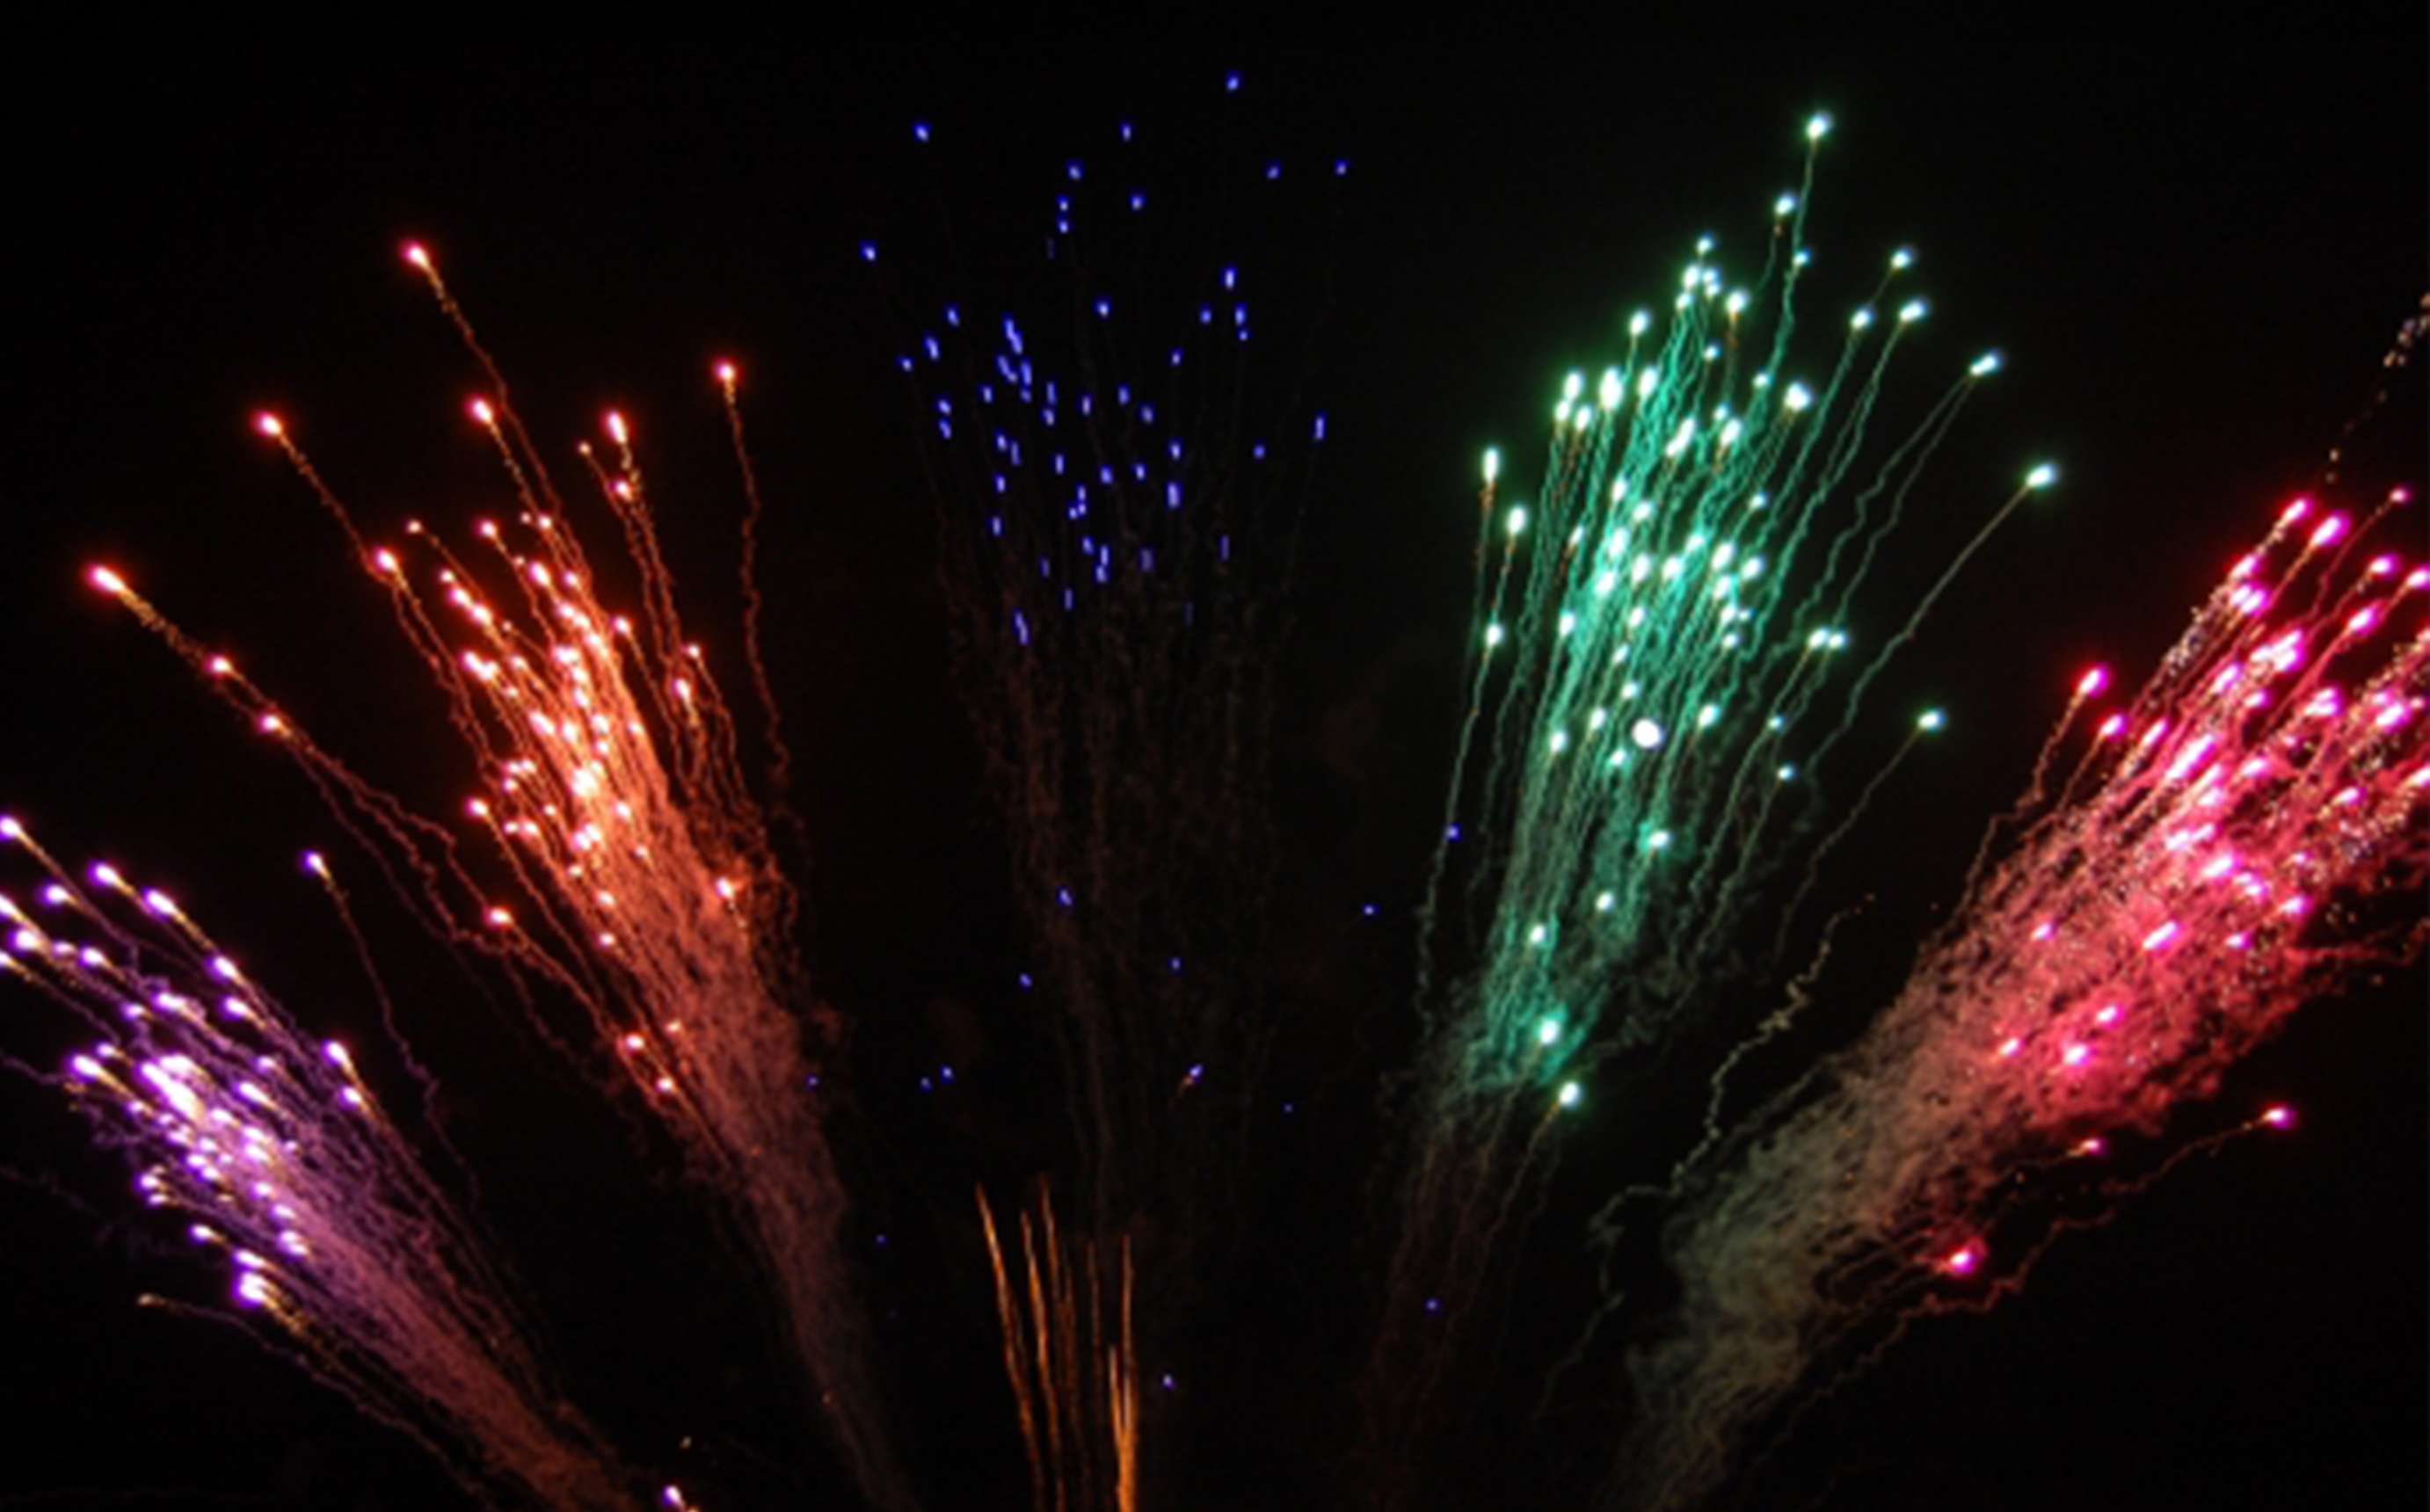 A Firework Solutions Limited display, with a multi-coloured fireworks